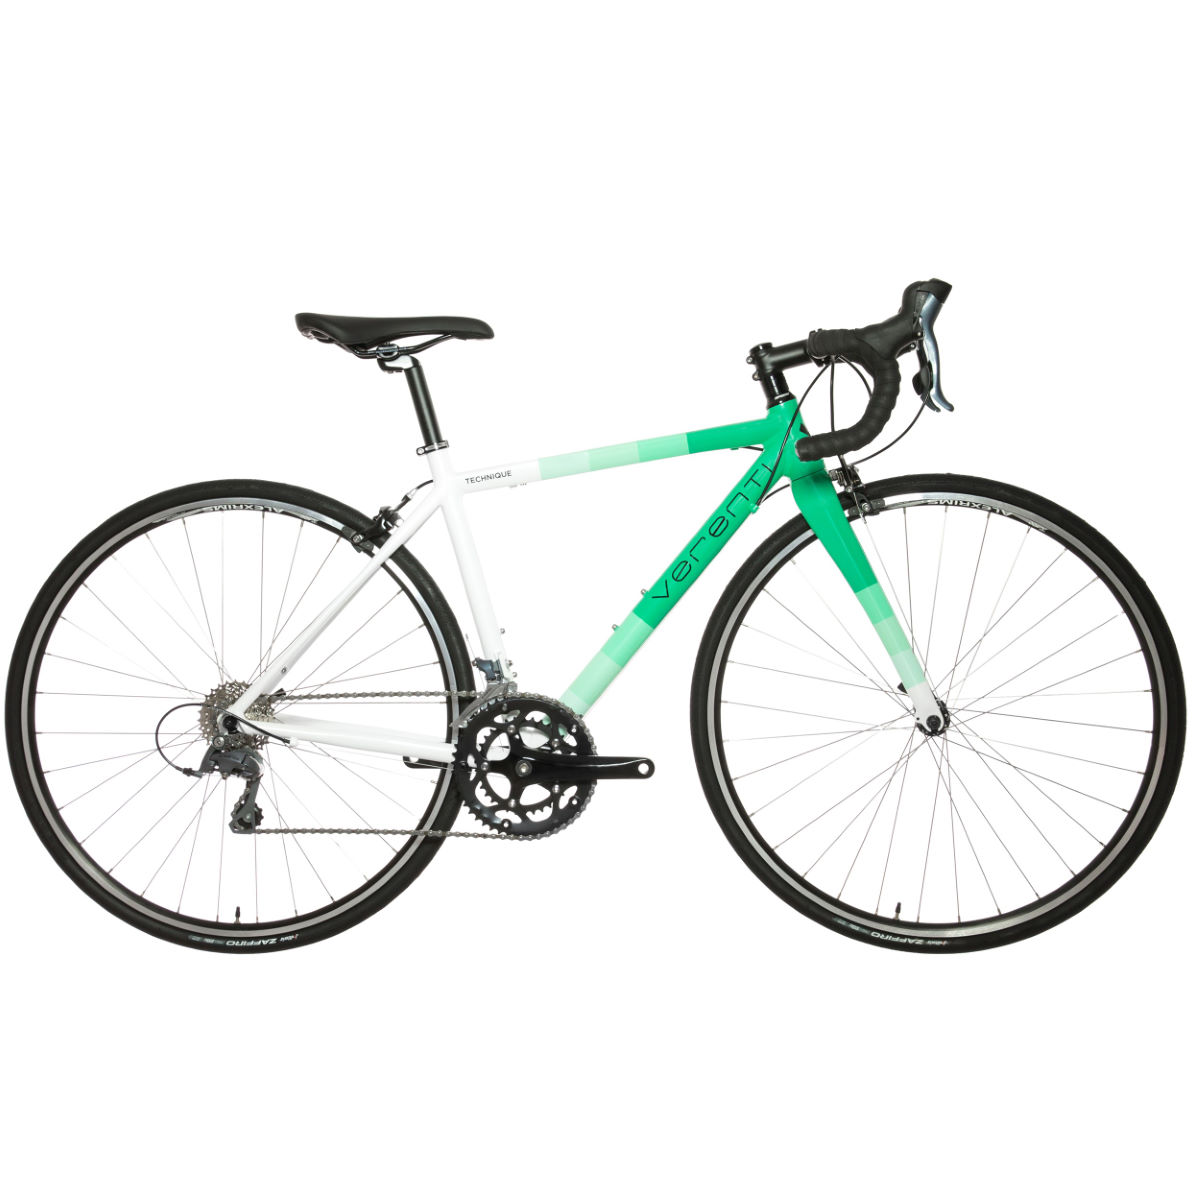 Vélo de route Femme Verenti Technique Claris (2017) - 44cm Stock Bike